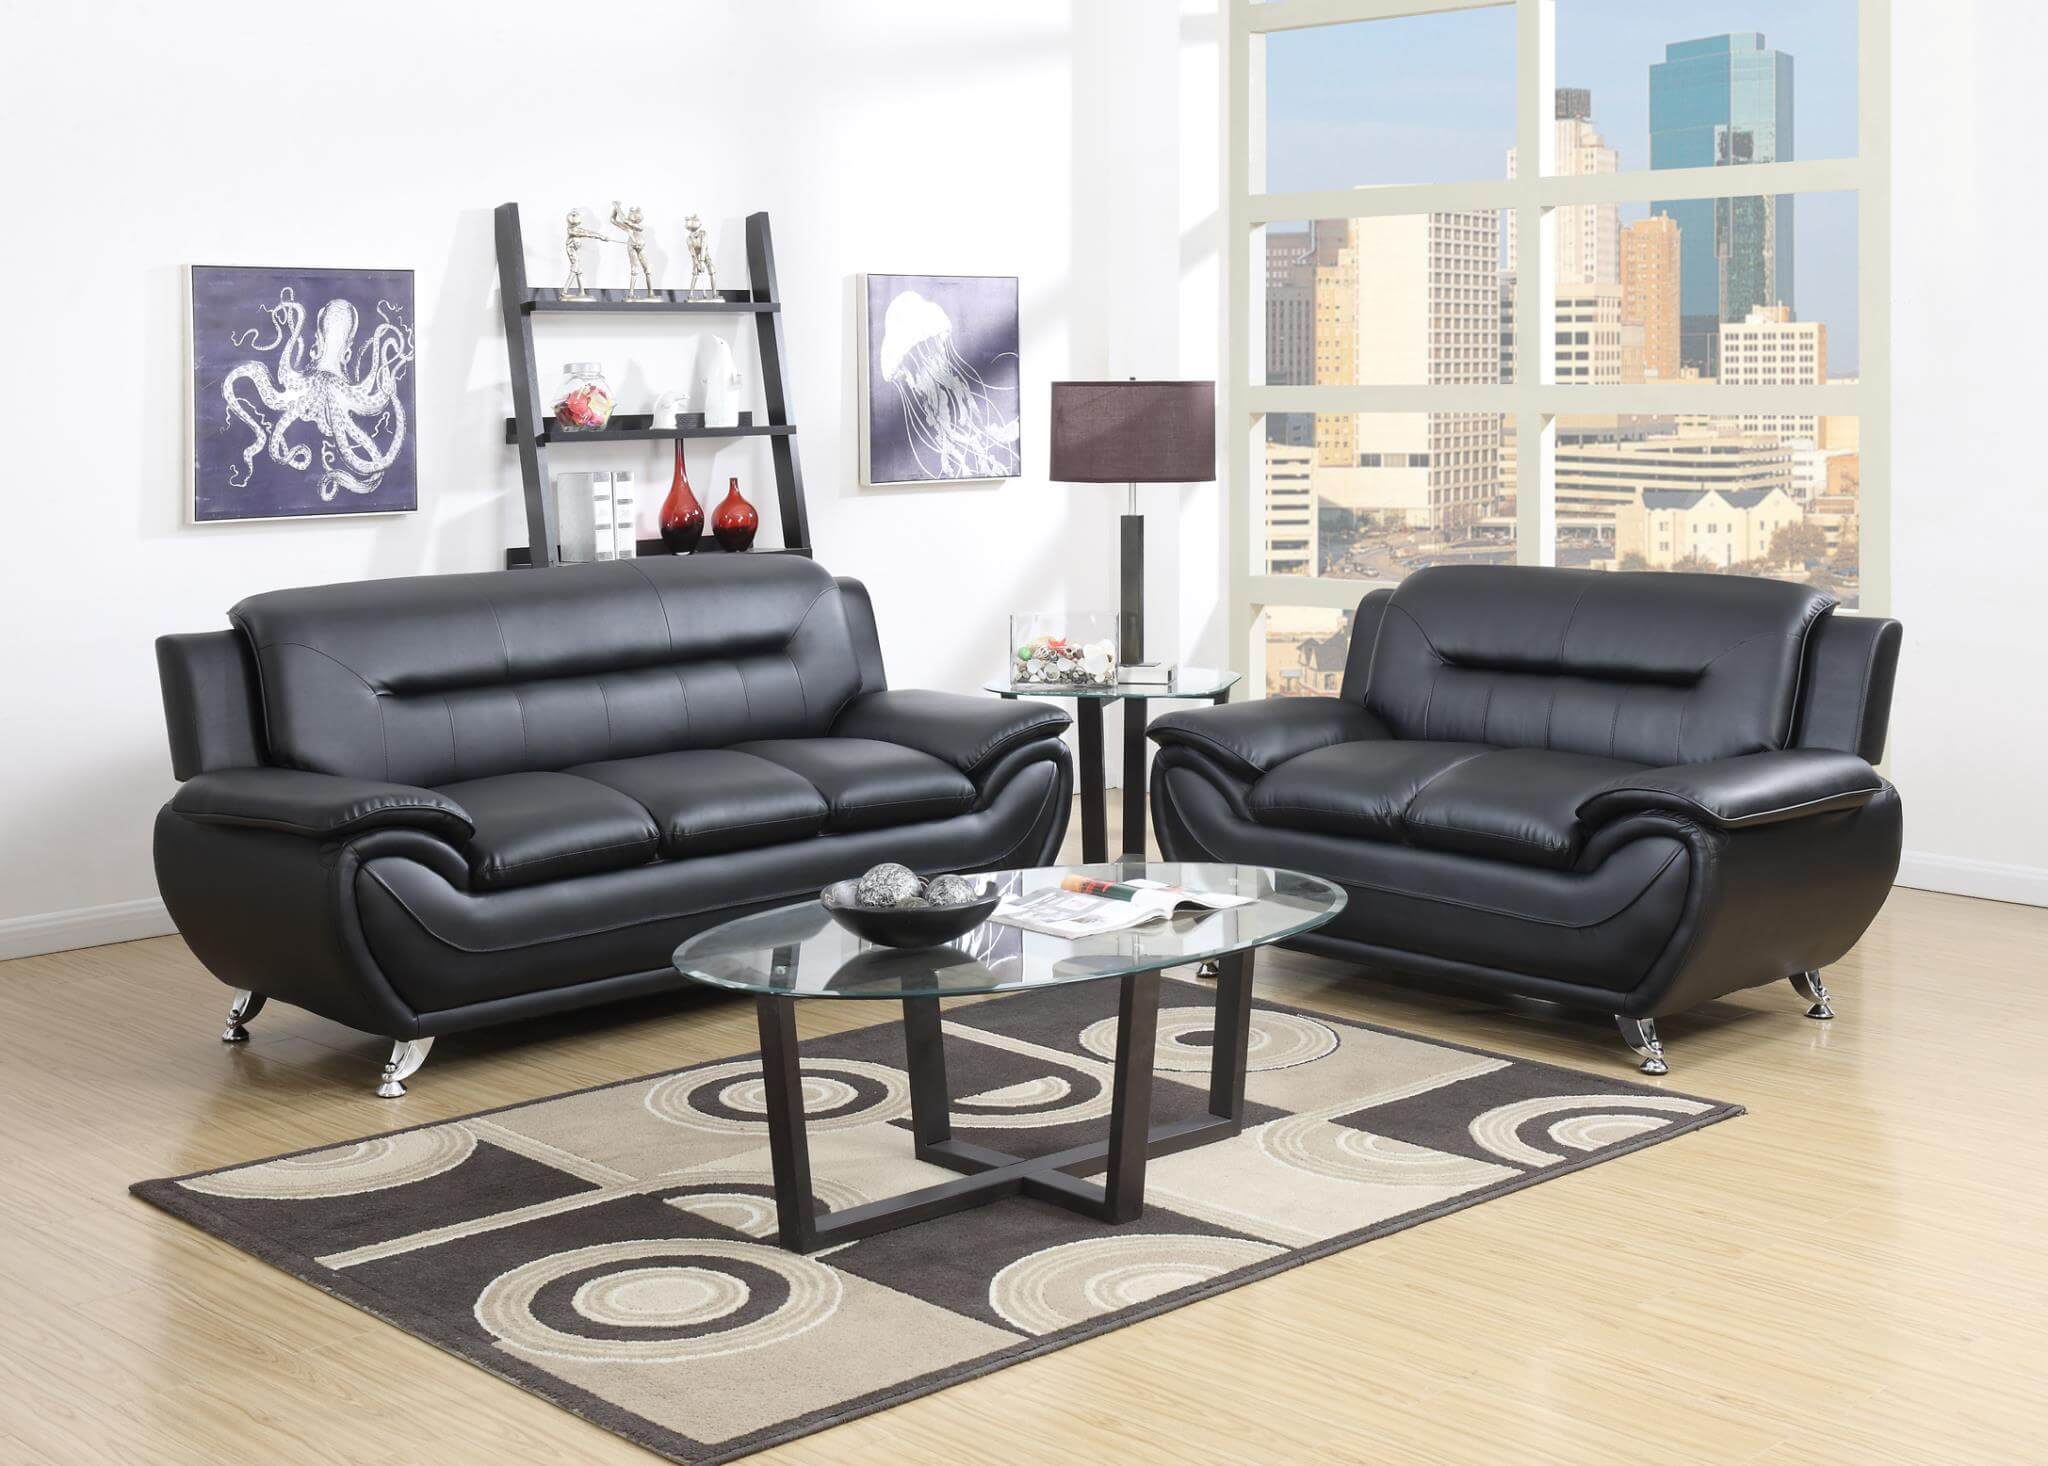 black living room furniture set. black living room Black Living Room Set  Leather Sets